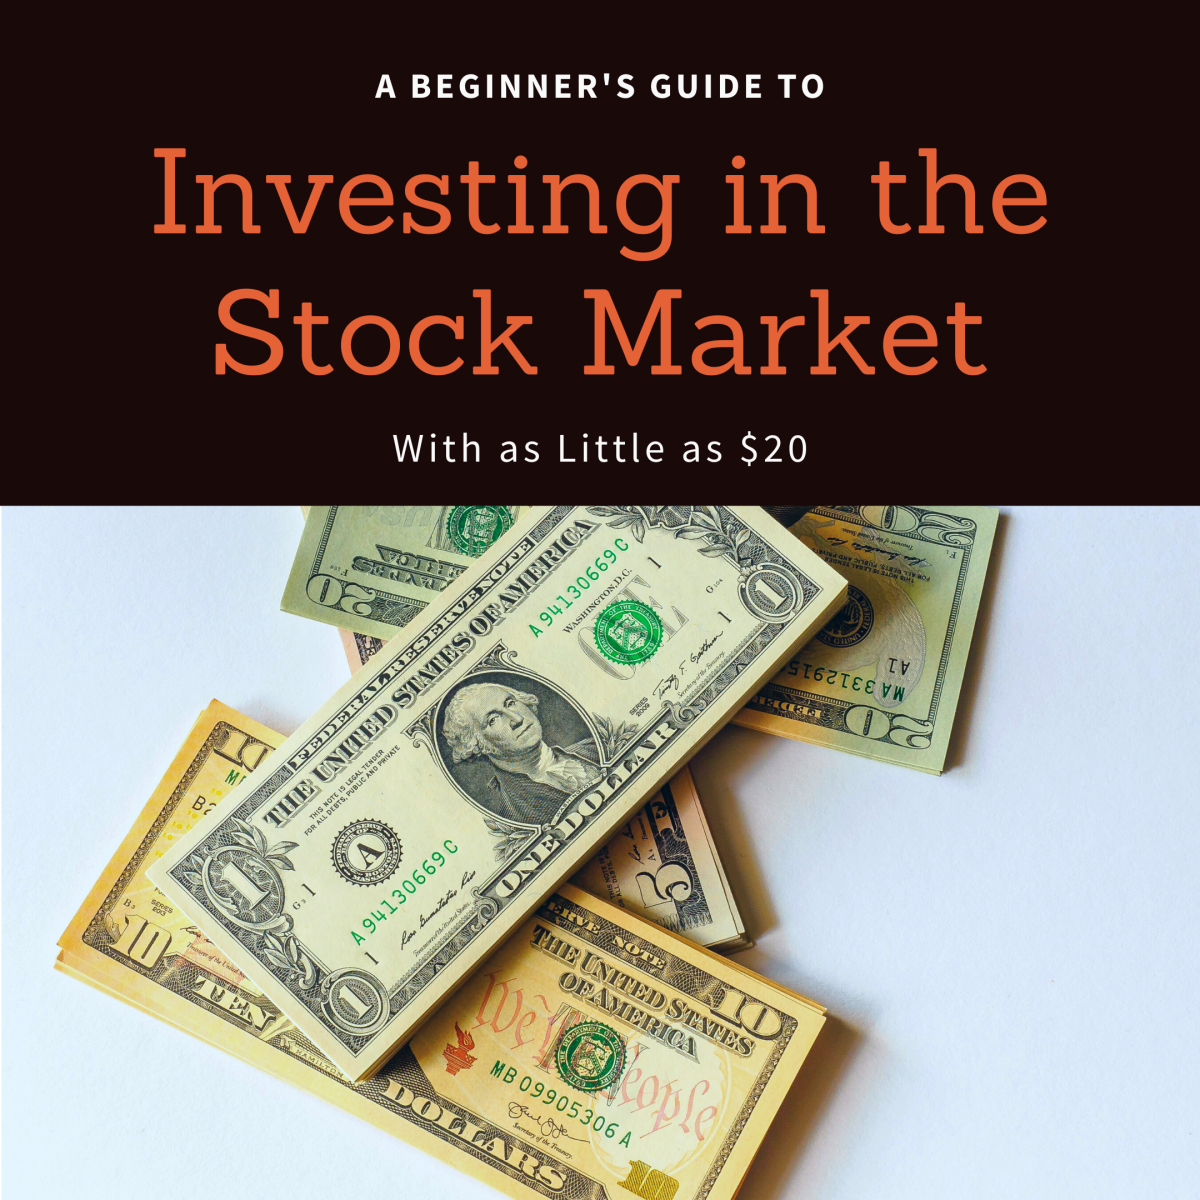 How to Start Investing in the Stock Market With Only $20